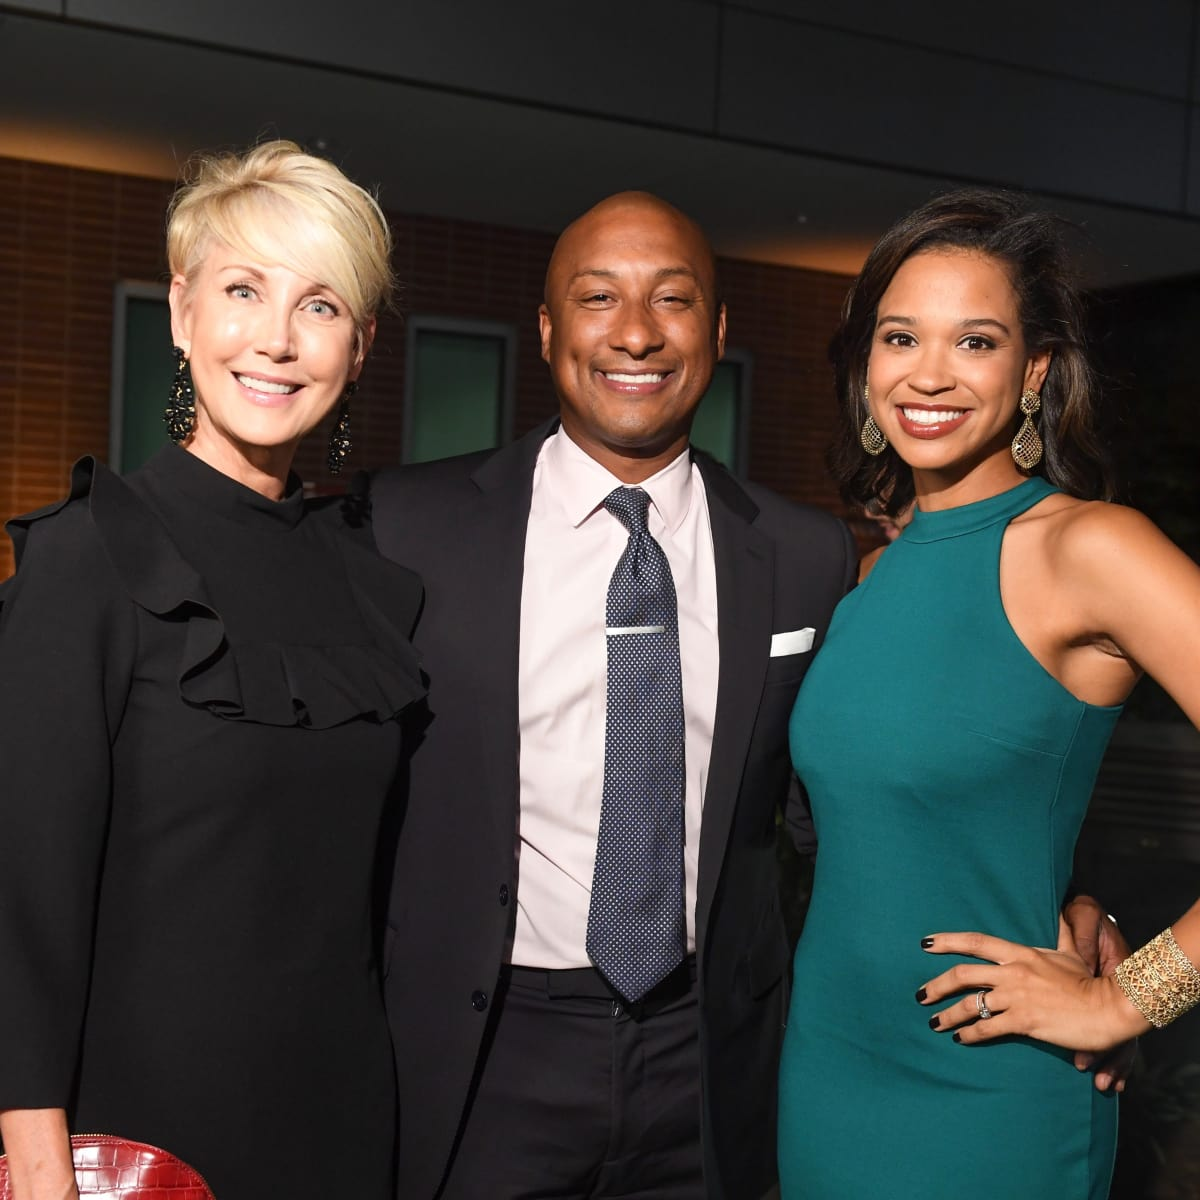 erri Moore, Troy Clendenin, Mia Gradney at Dress for Success Cuisine for a Cause